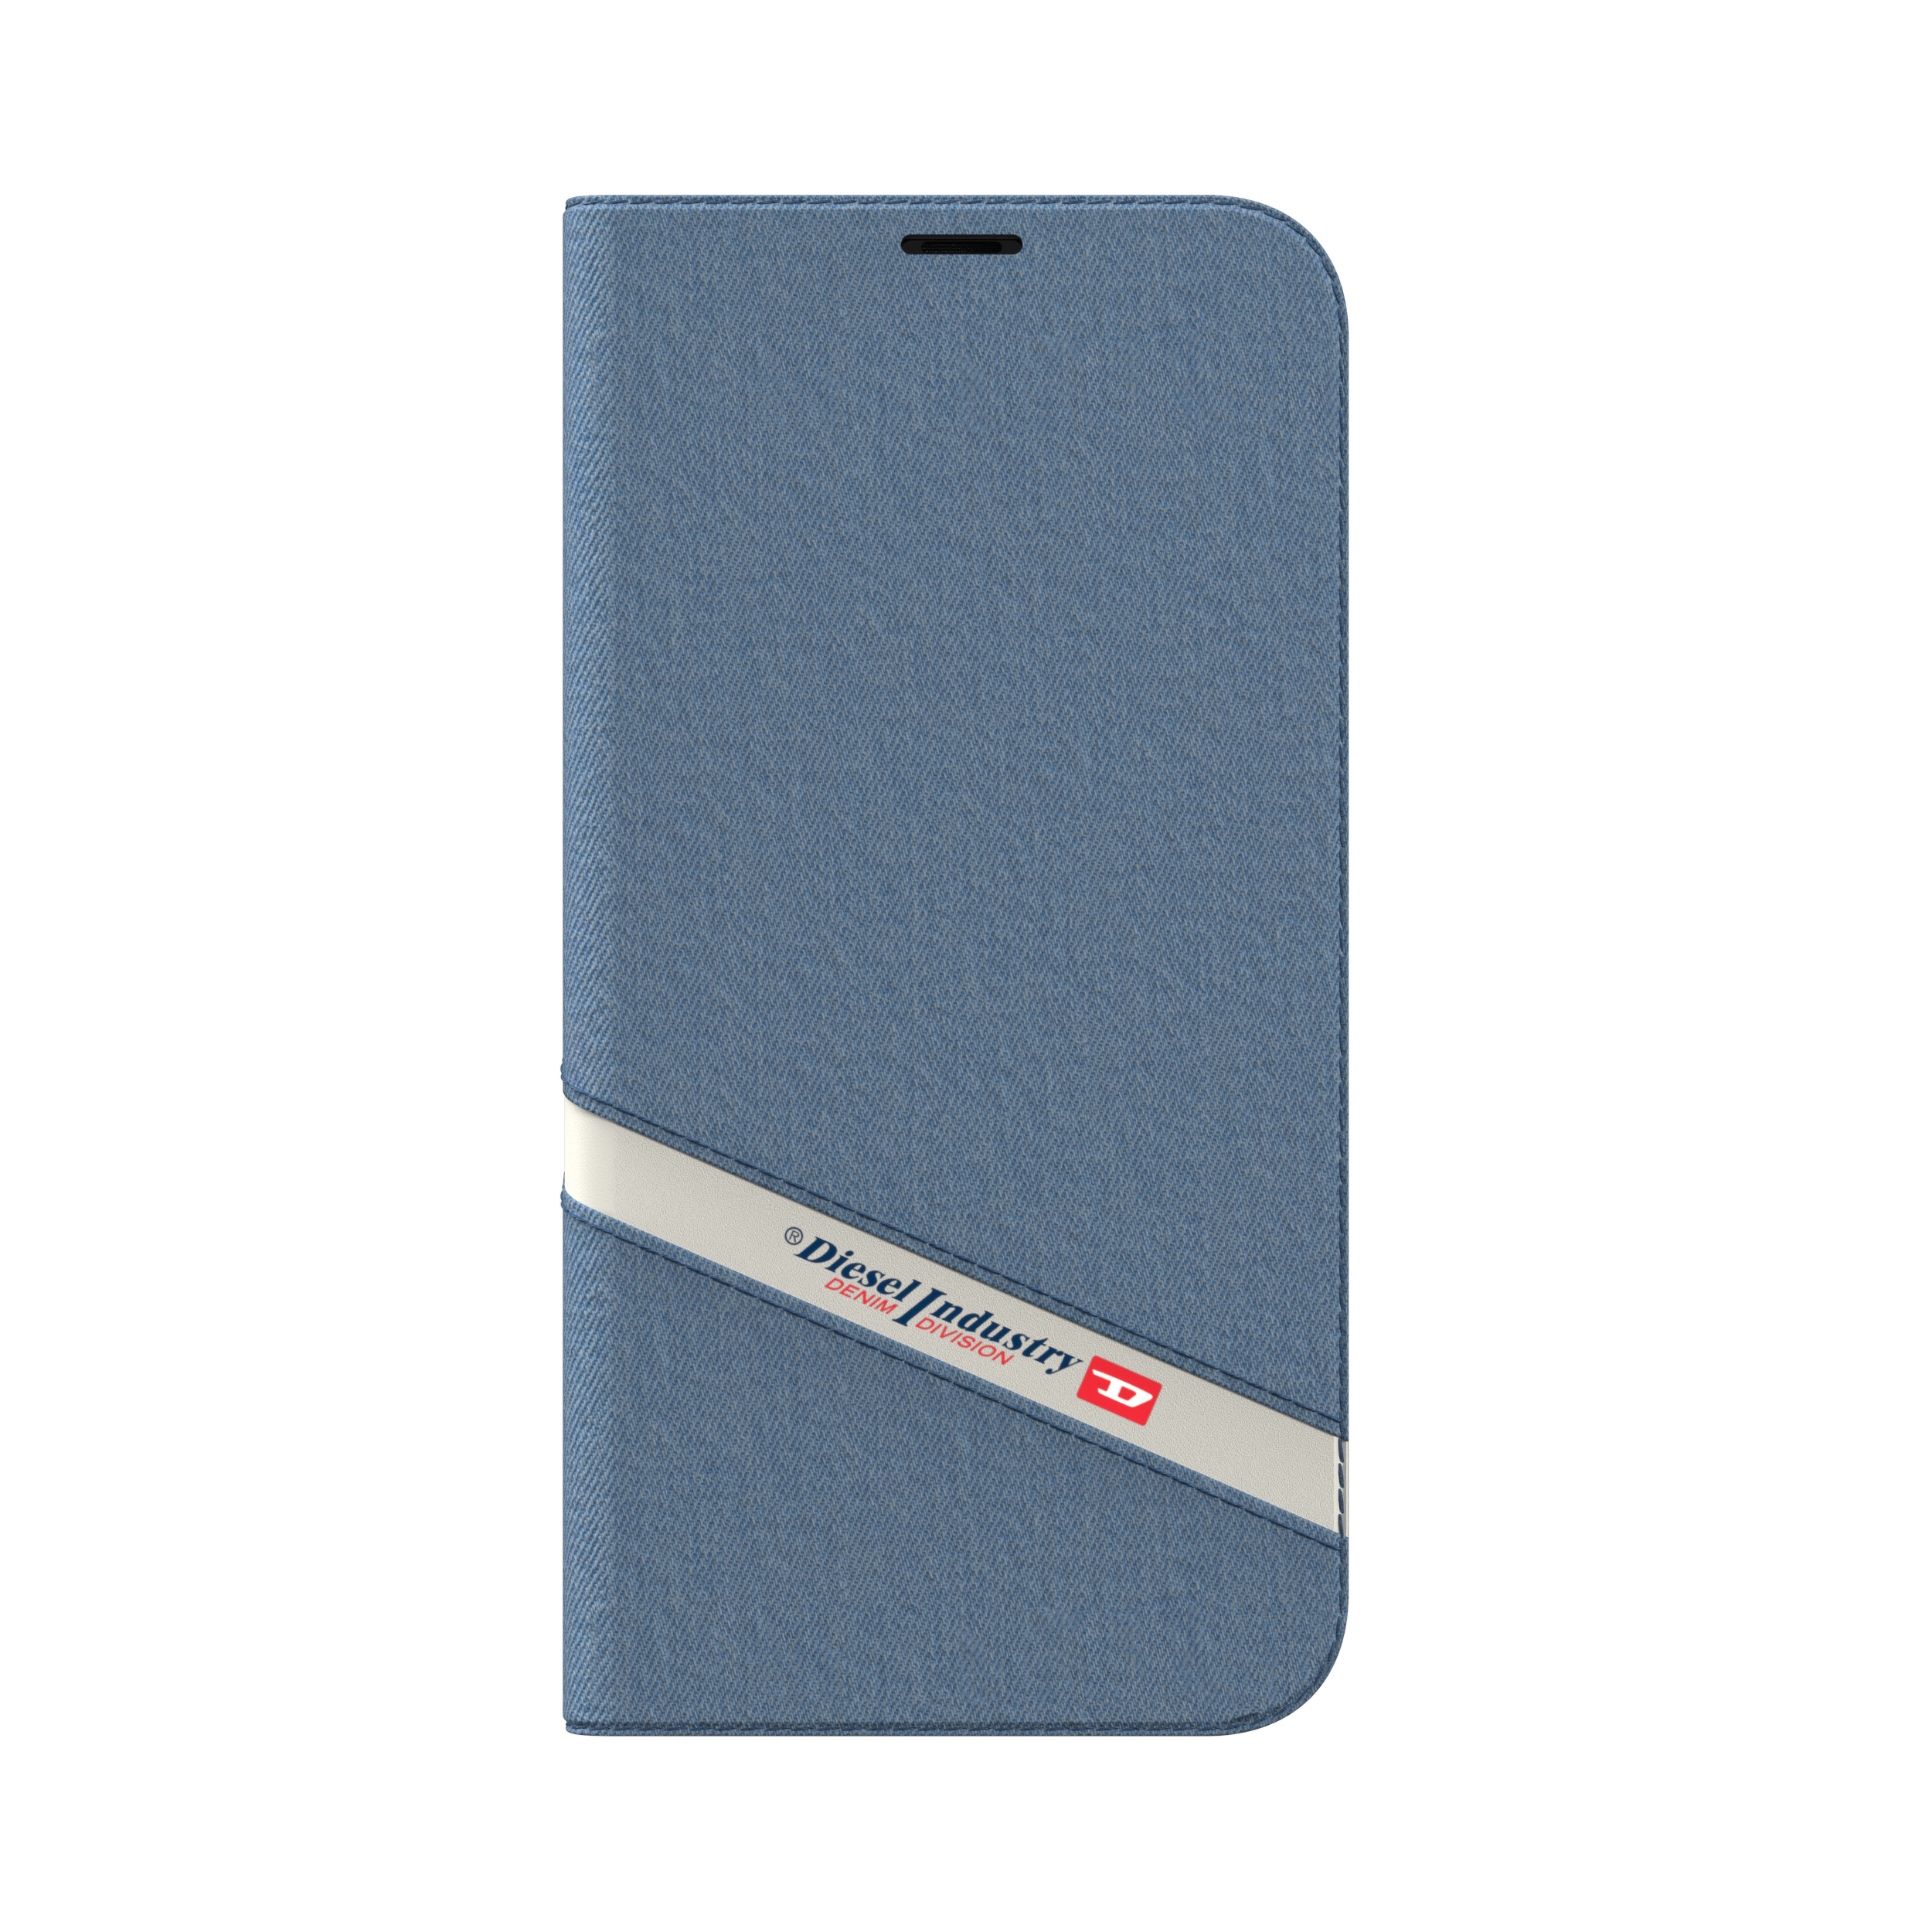 Denim booklet Case for iPhone